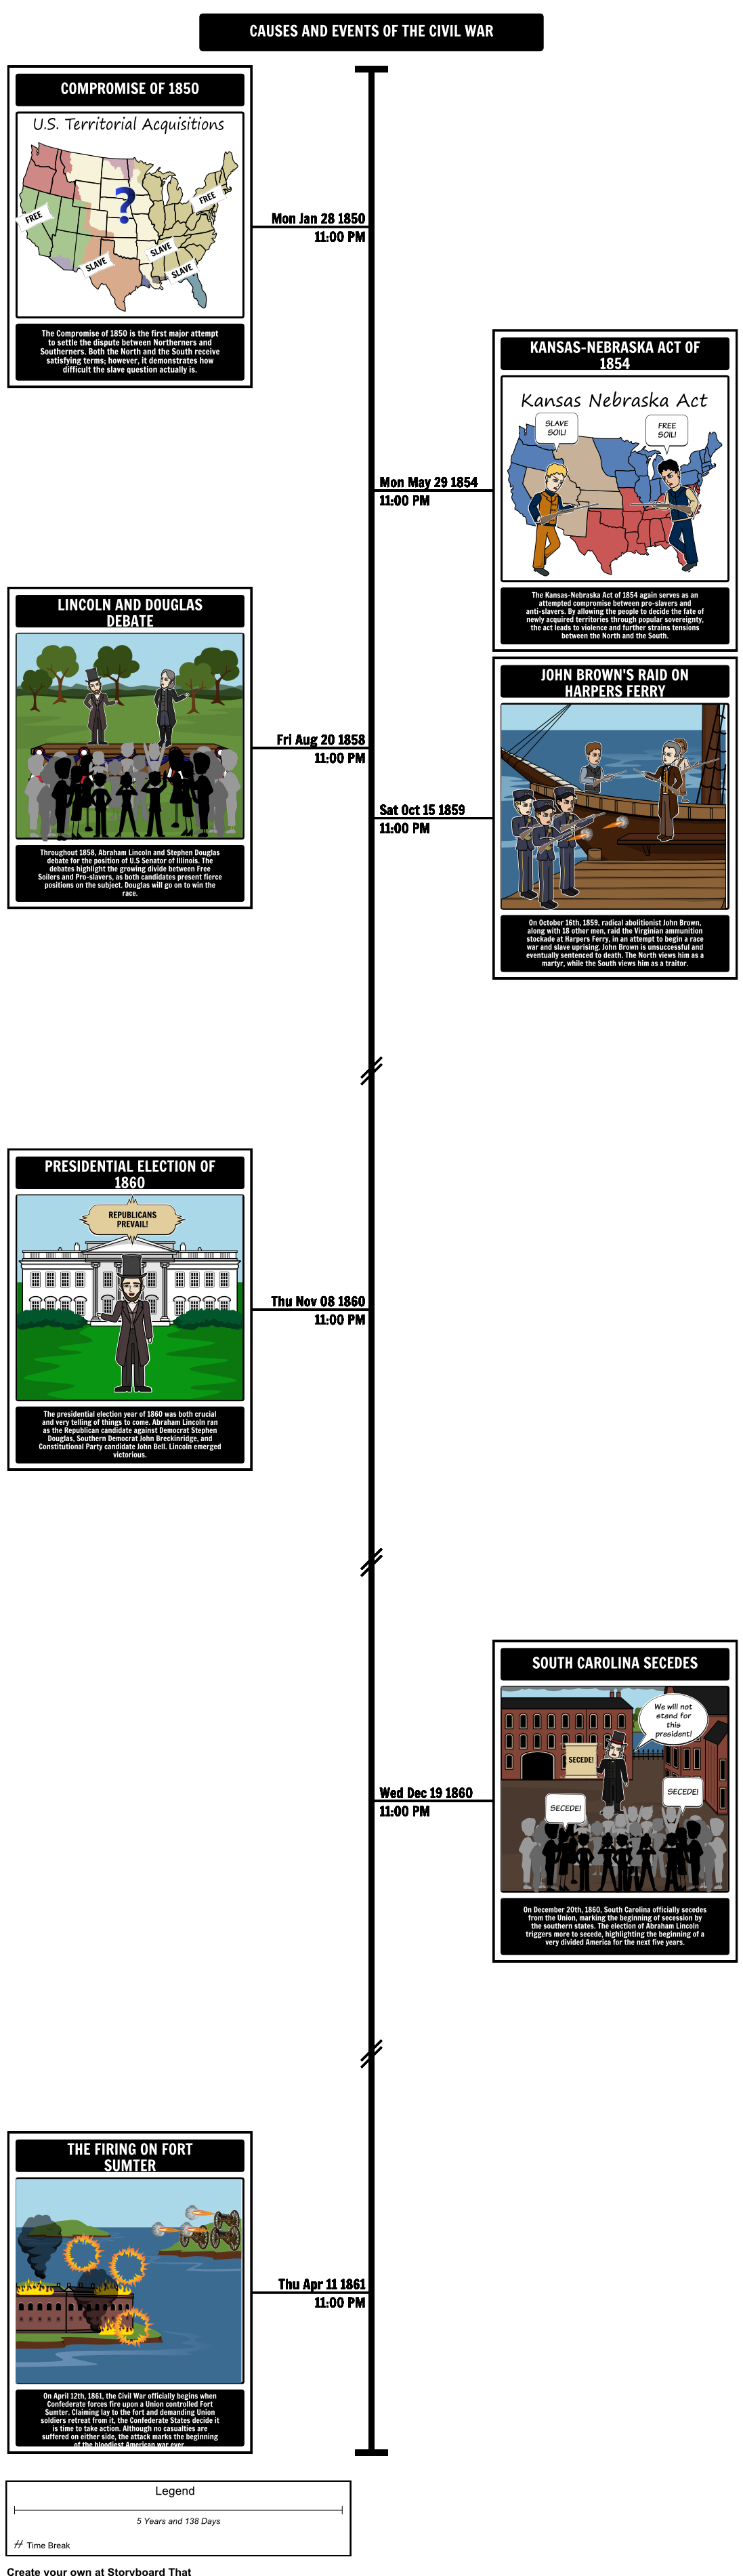 1850s america a precursor to the american civil war timeline 1850s america a precursor to the american civil war timeline 1850s america pre civil war had many key events students can create storyboards or graphic publicscrutiny Images